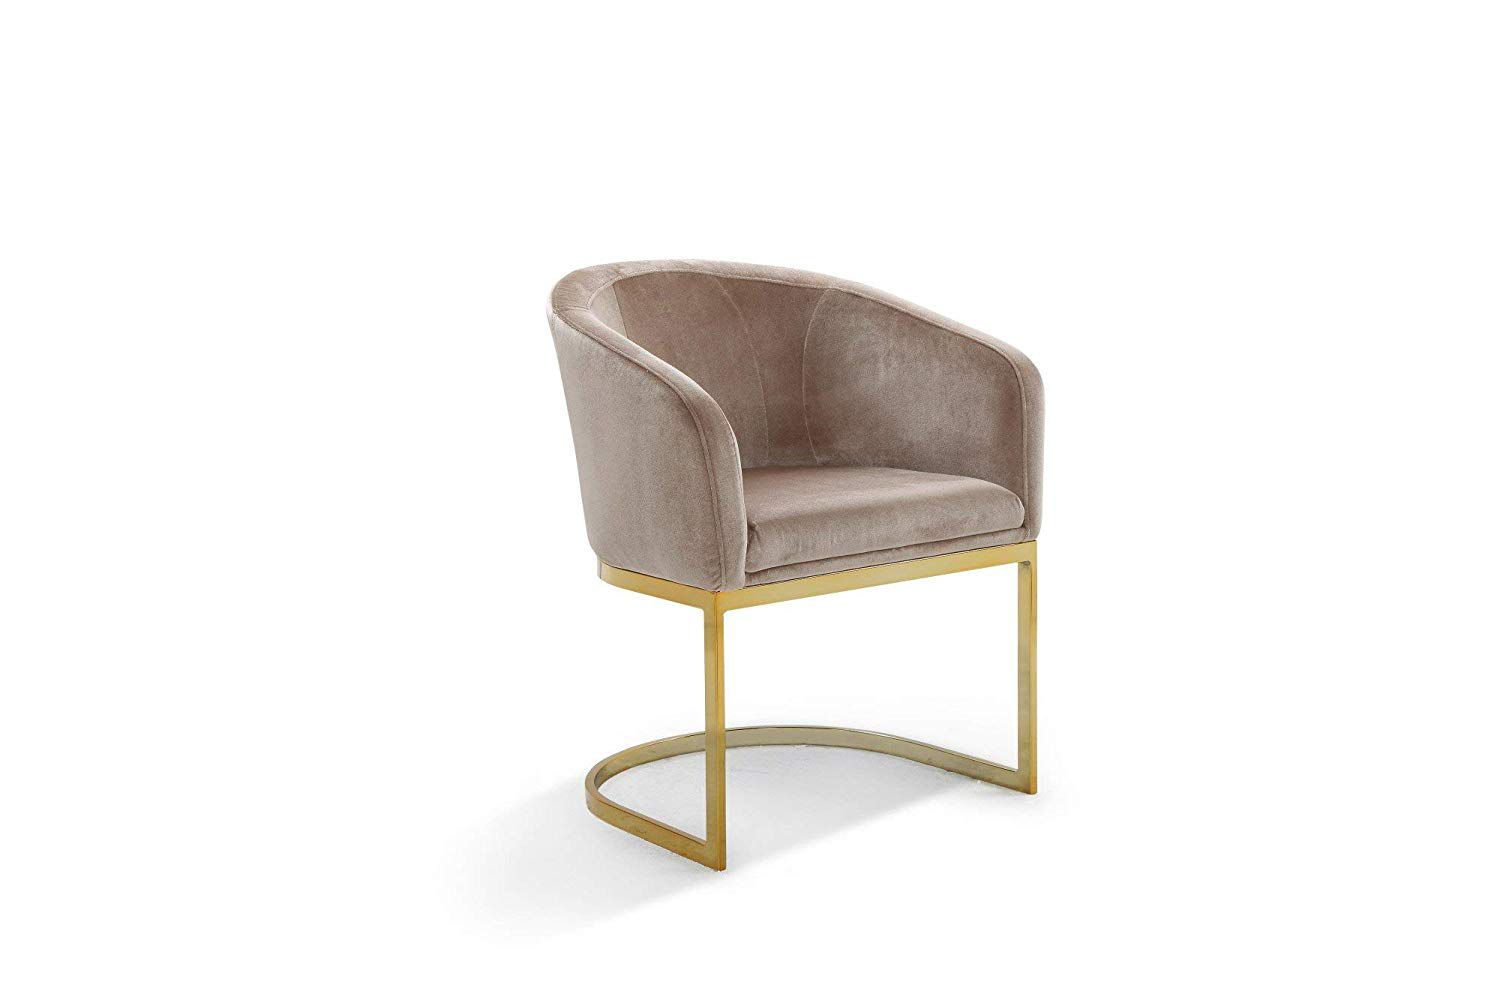 A taupe velvet chair with a gold, half-moon base.